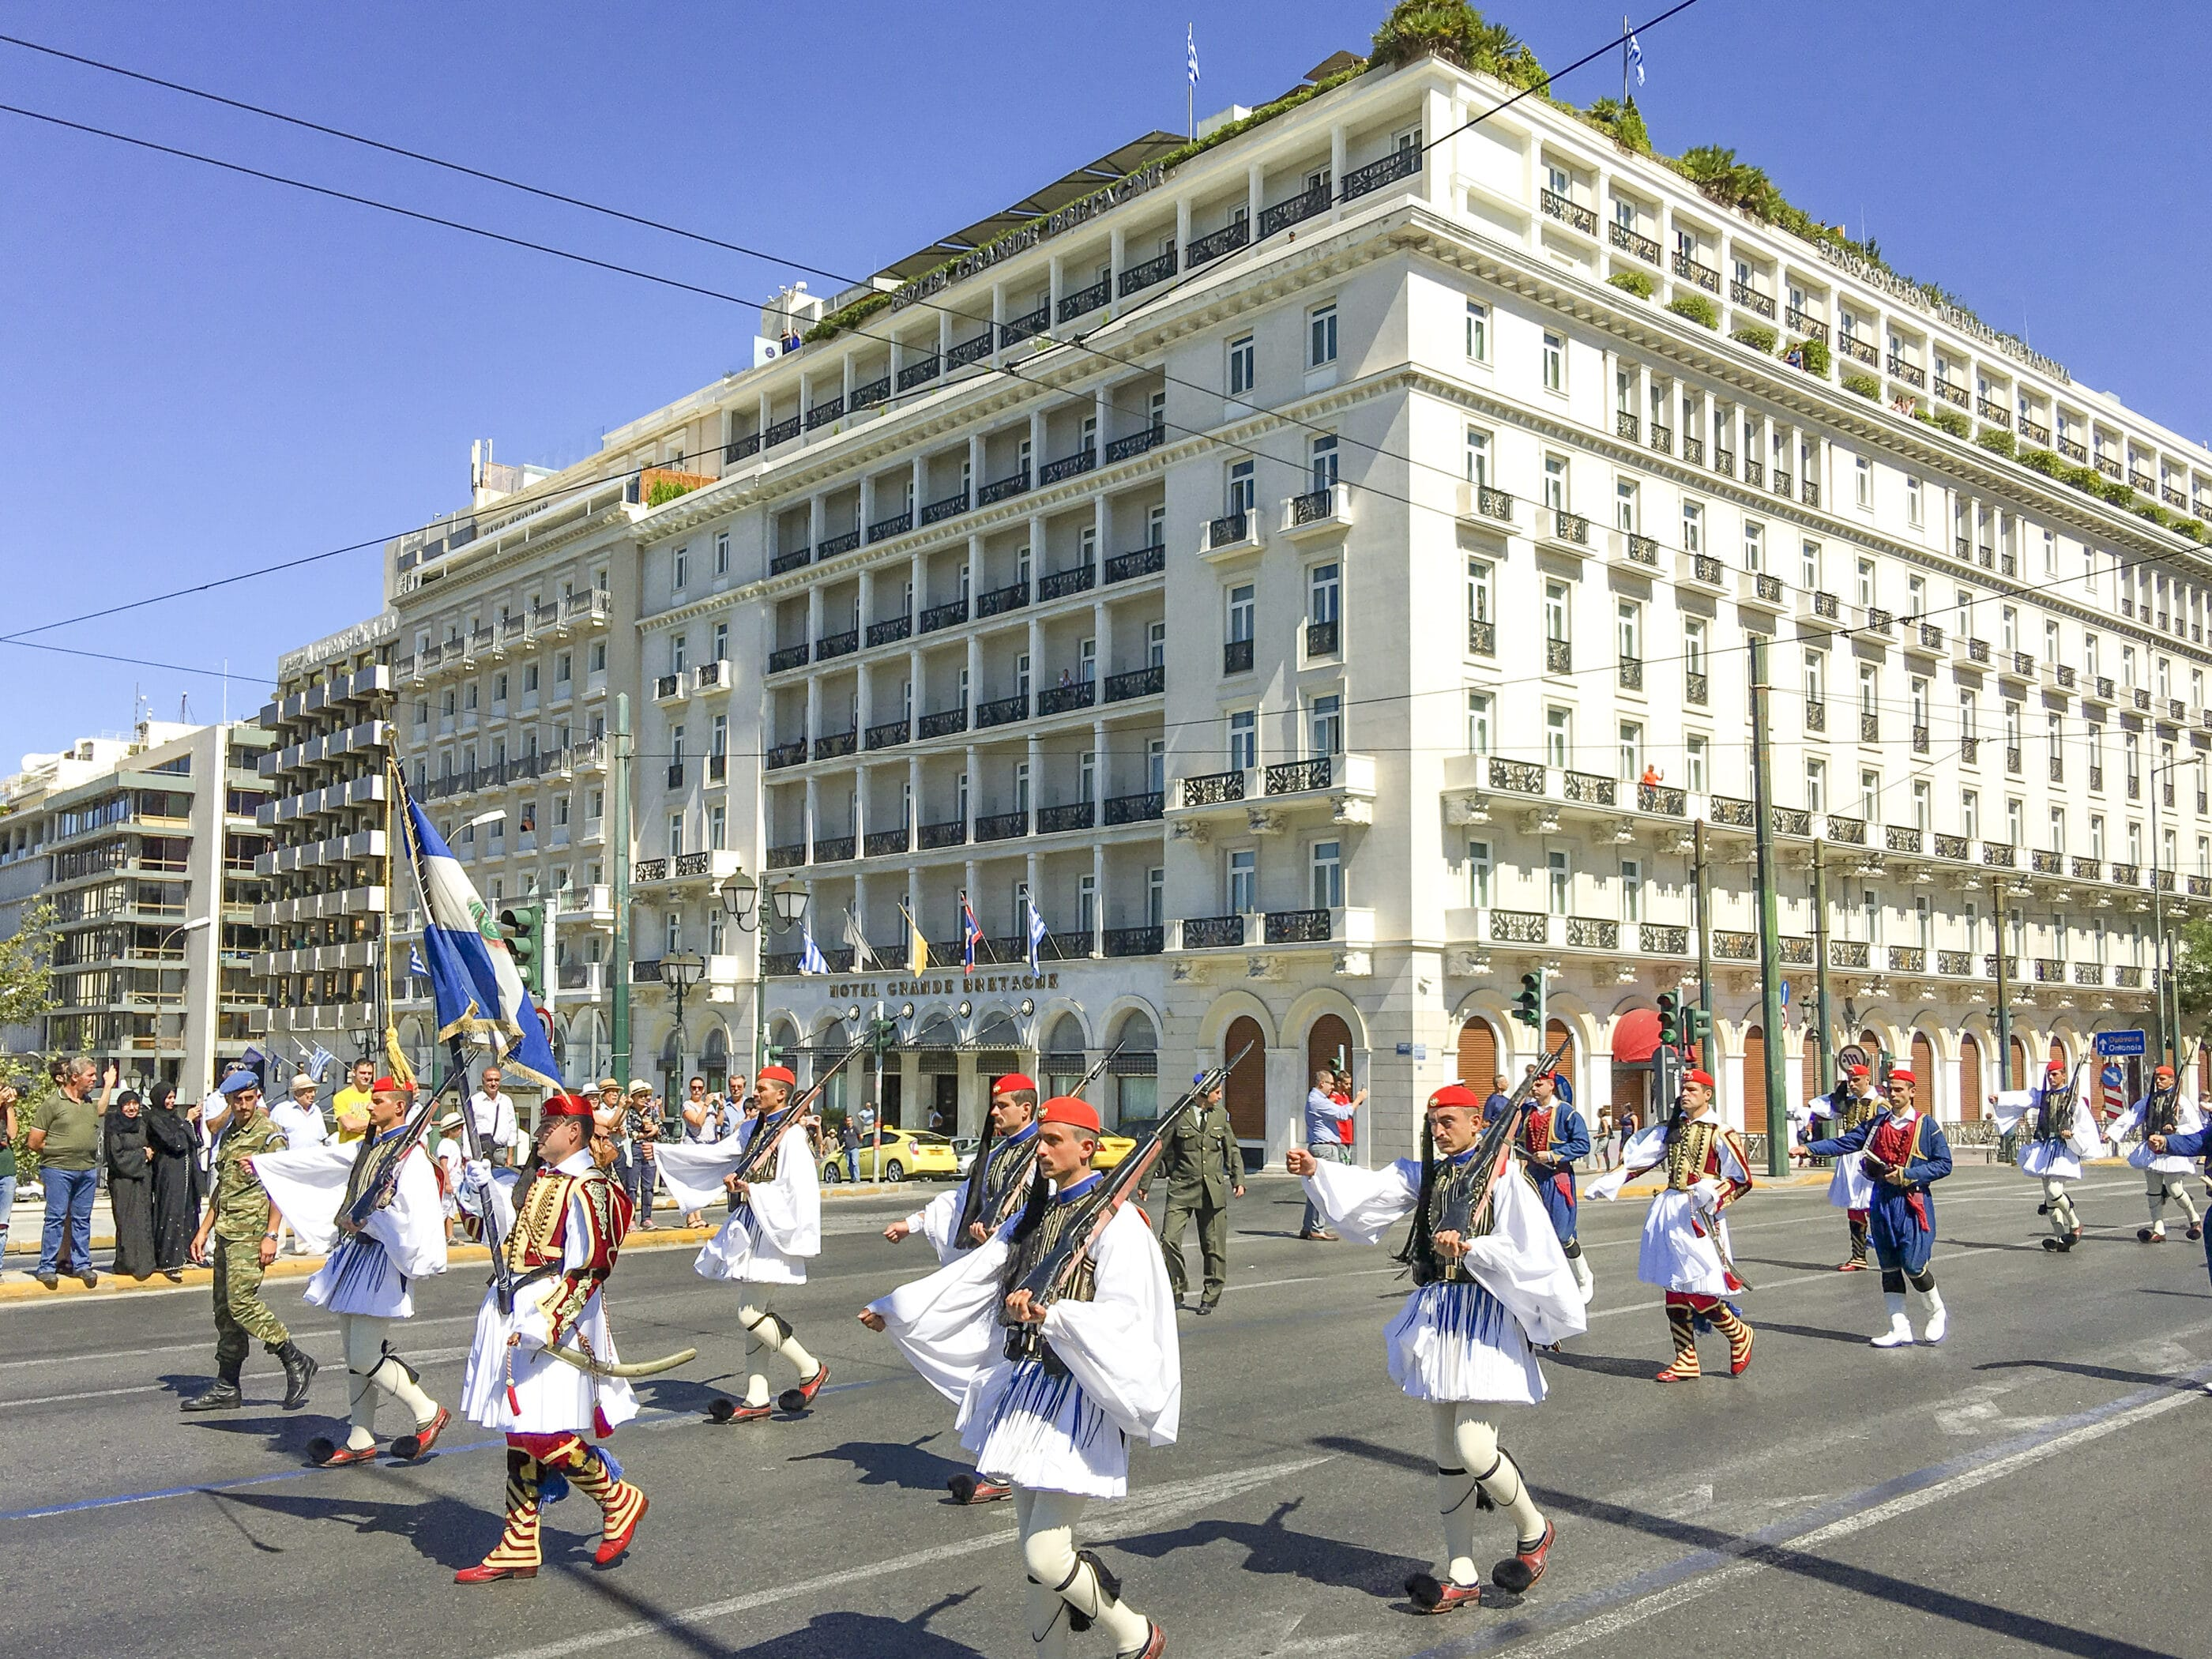 Changing of the Guards ceremony marches down the street in front of Hotel Grande Bretagne.